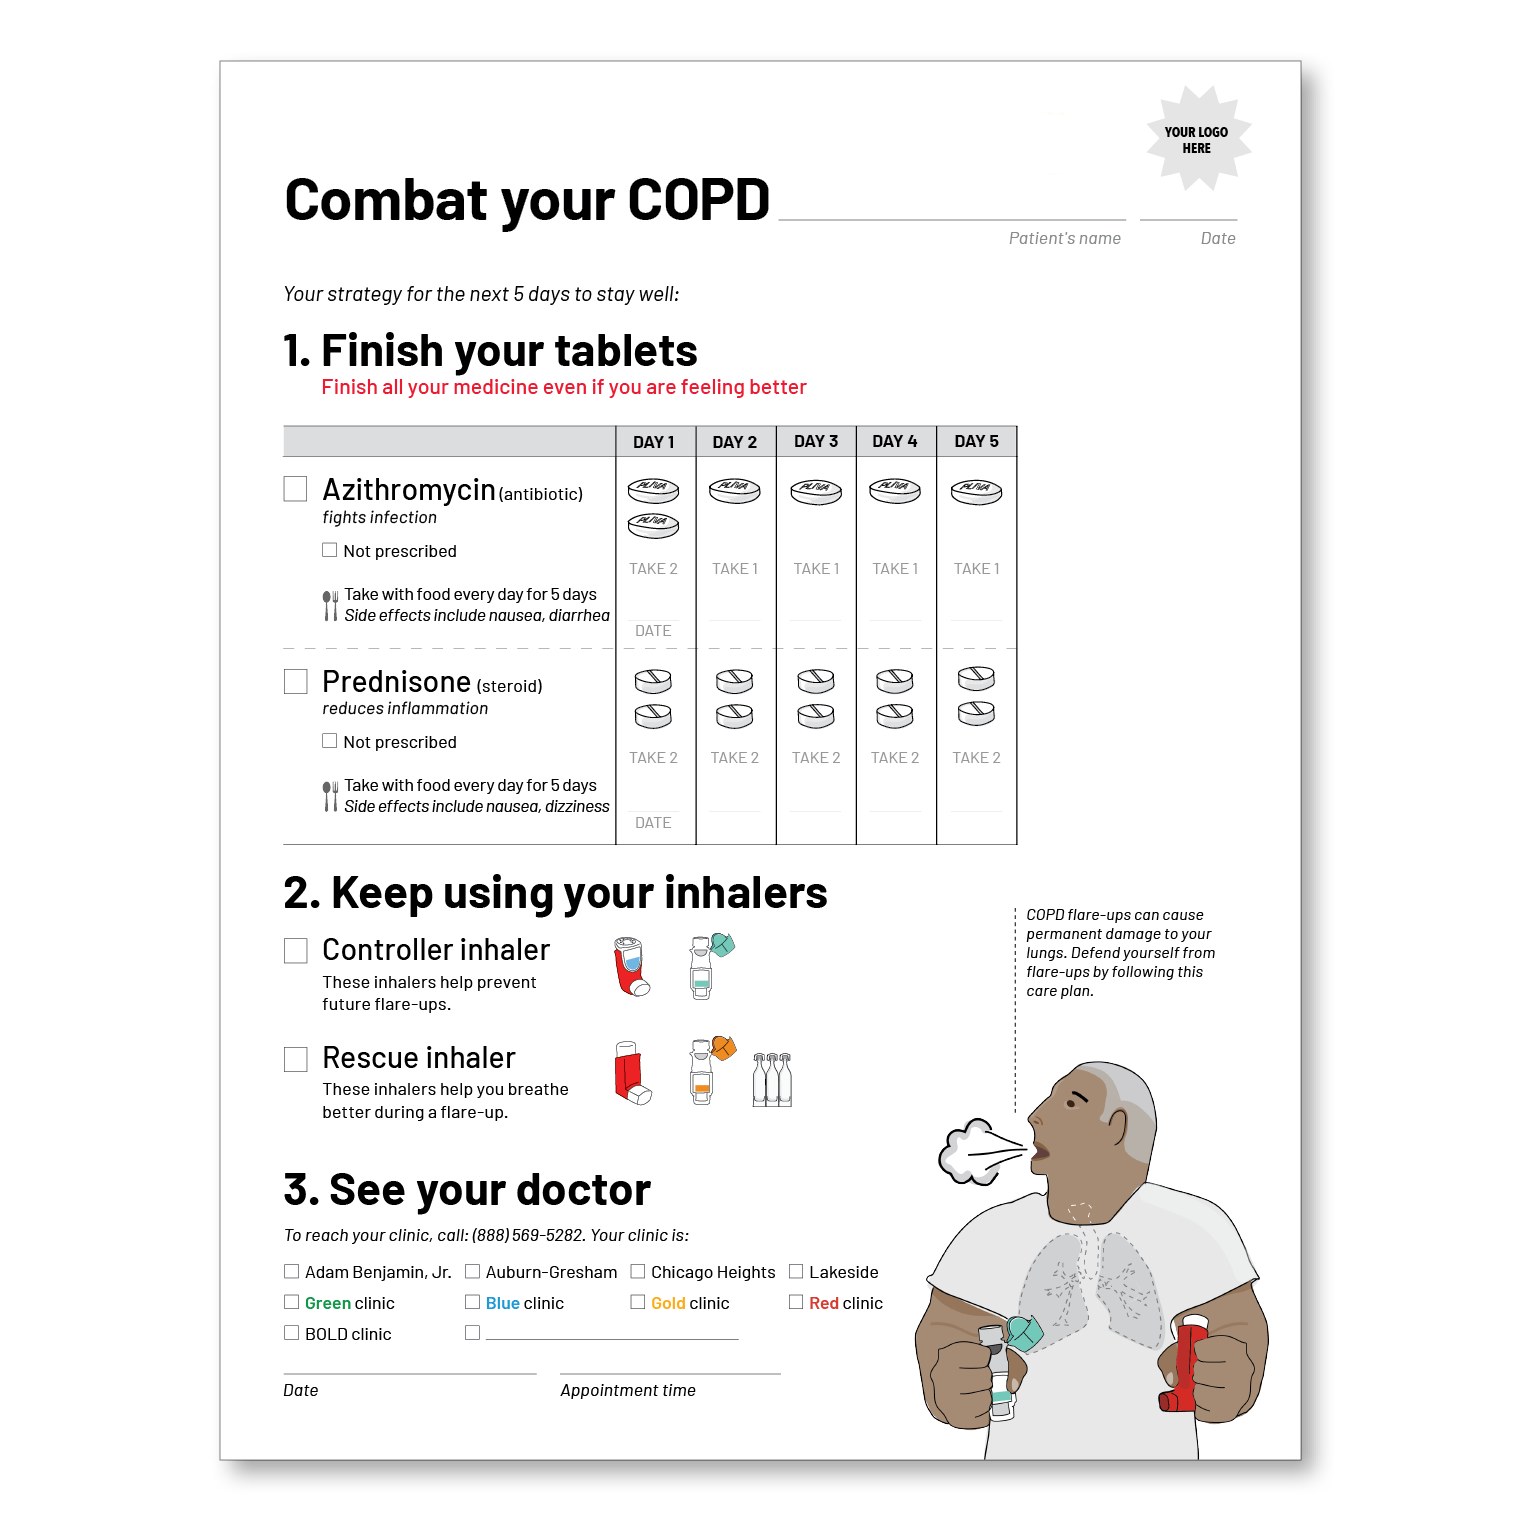 IHDD_Website_Products_COPD_VA_YLH_20190906.png